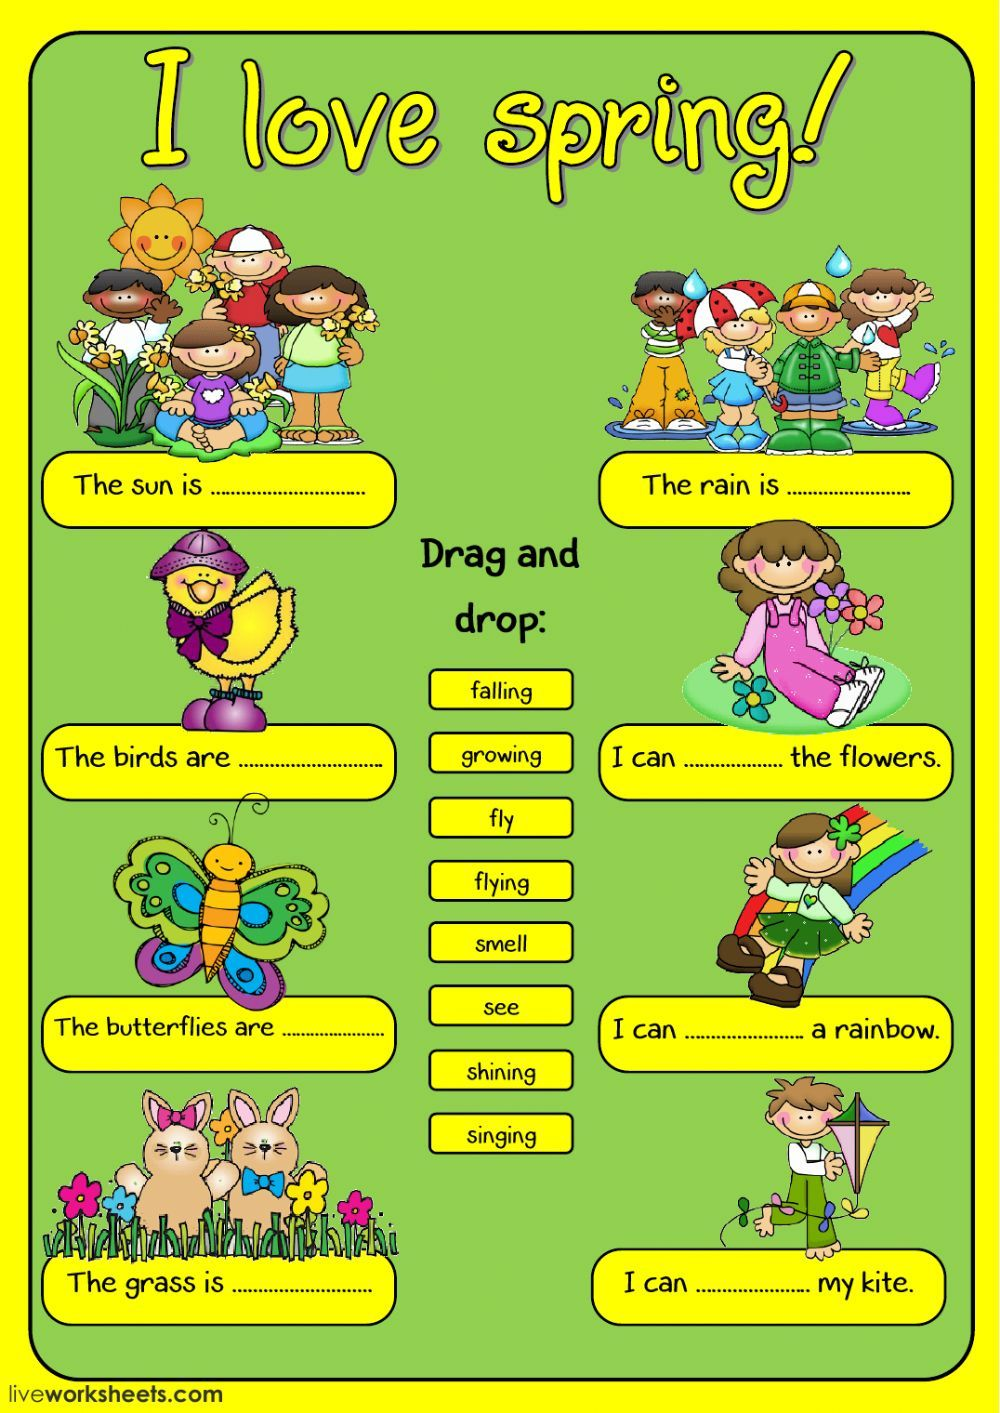 Spring Interactive And Downloadable Worksheet You Can Do The Exercises Online Or Download Th Seasons Worksheets Spring Vocabulary English As A Second Language [ 1413 x 1000 Pixel ]